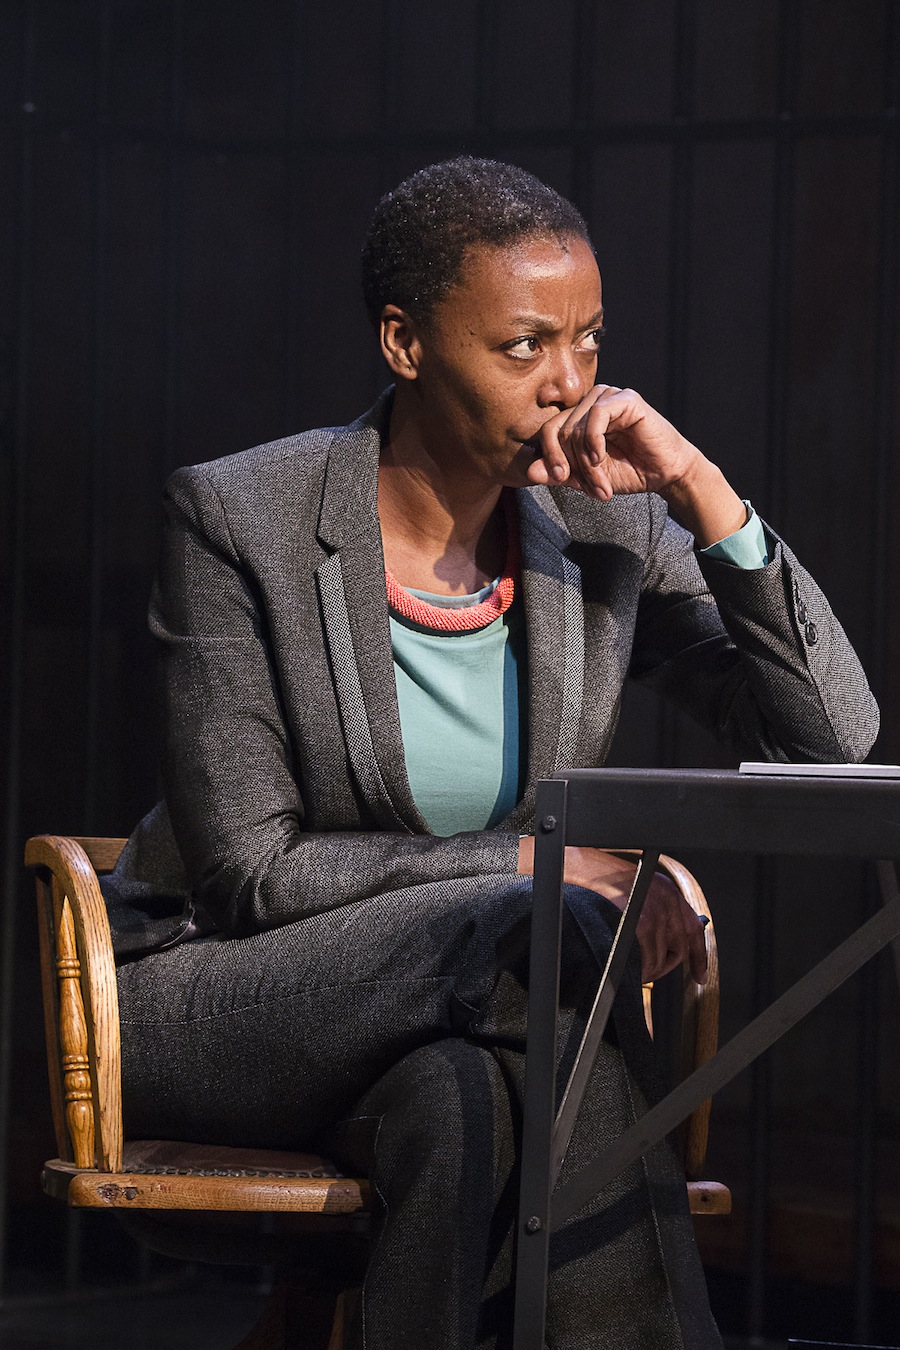 Noma Dumezweni as Pumla Gobodo-Madikizela in 'A Human Being Died That Night'